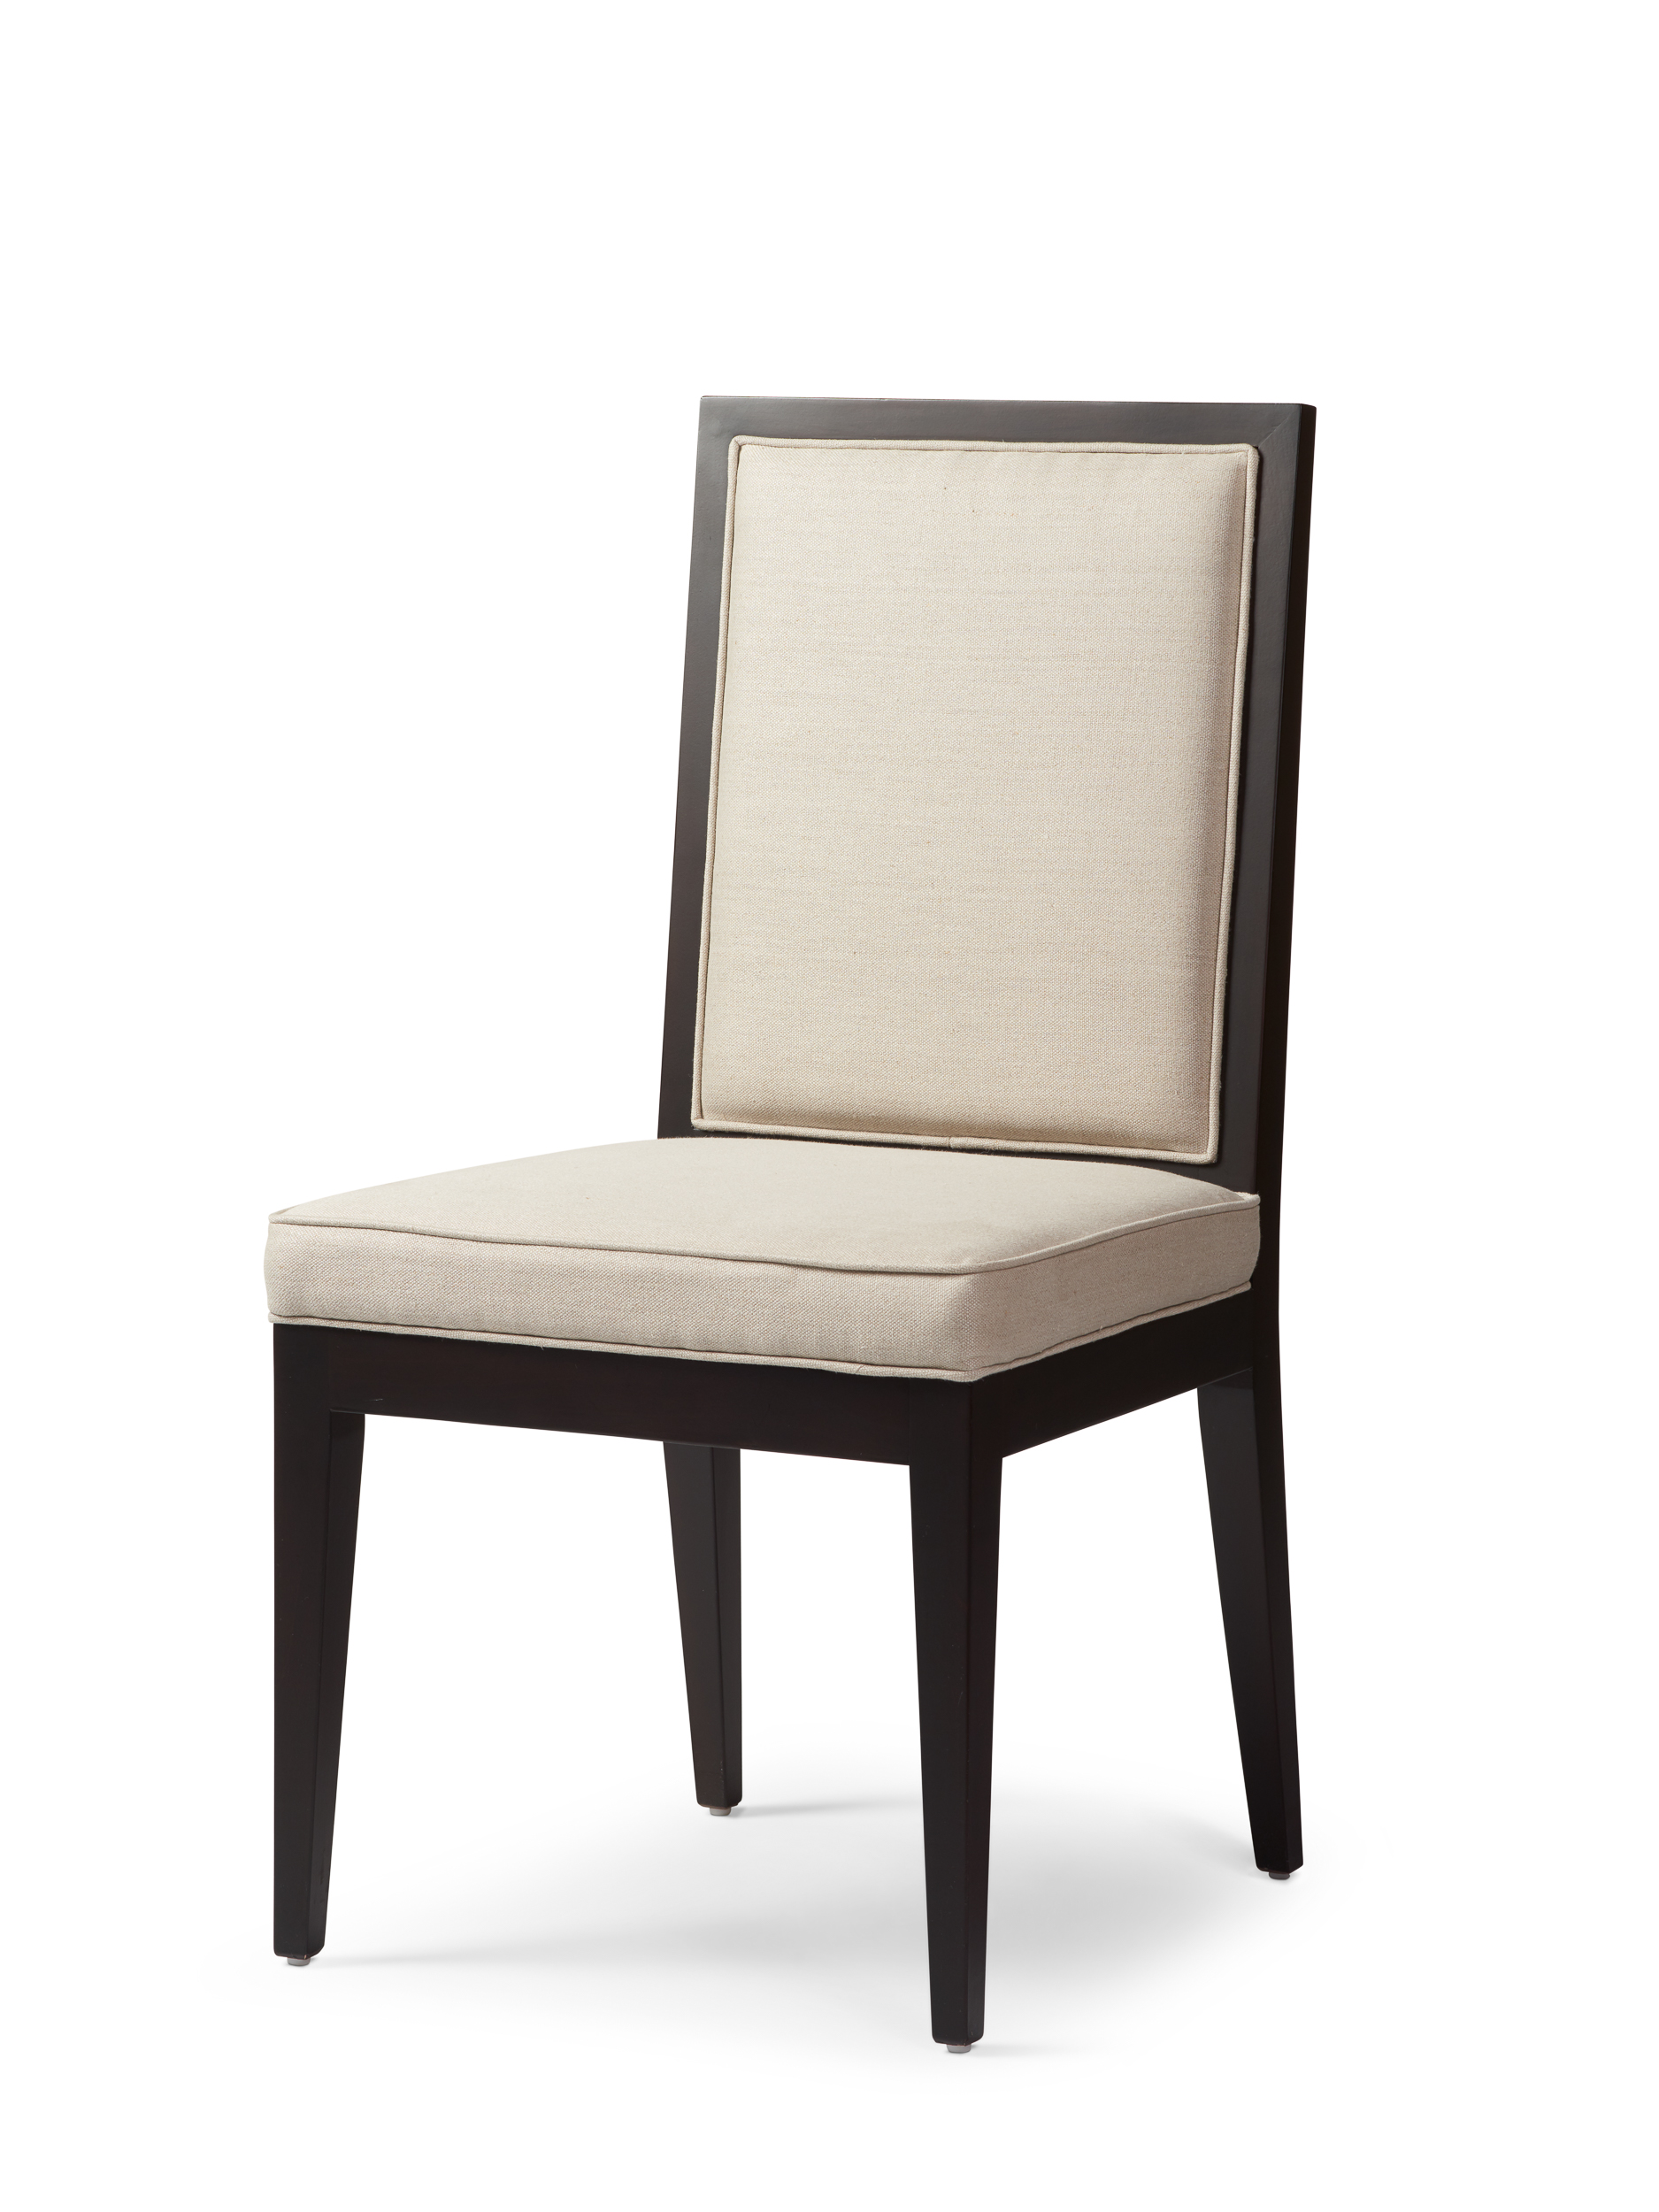 6205 Side Chair